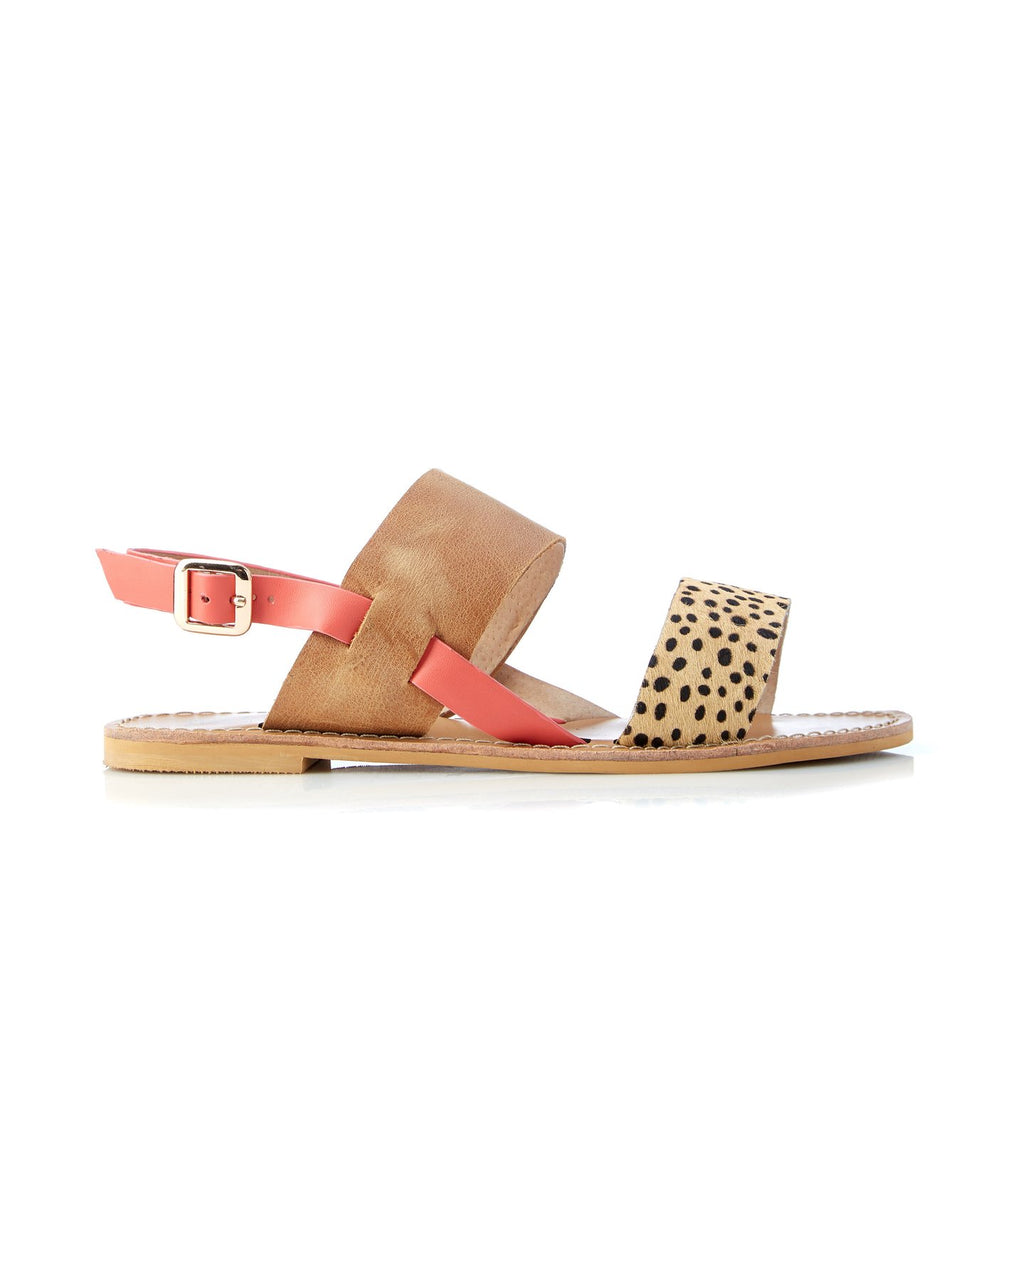 Walnut Melbourne Camelia Sandal in Tan Leopard